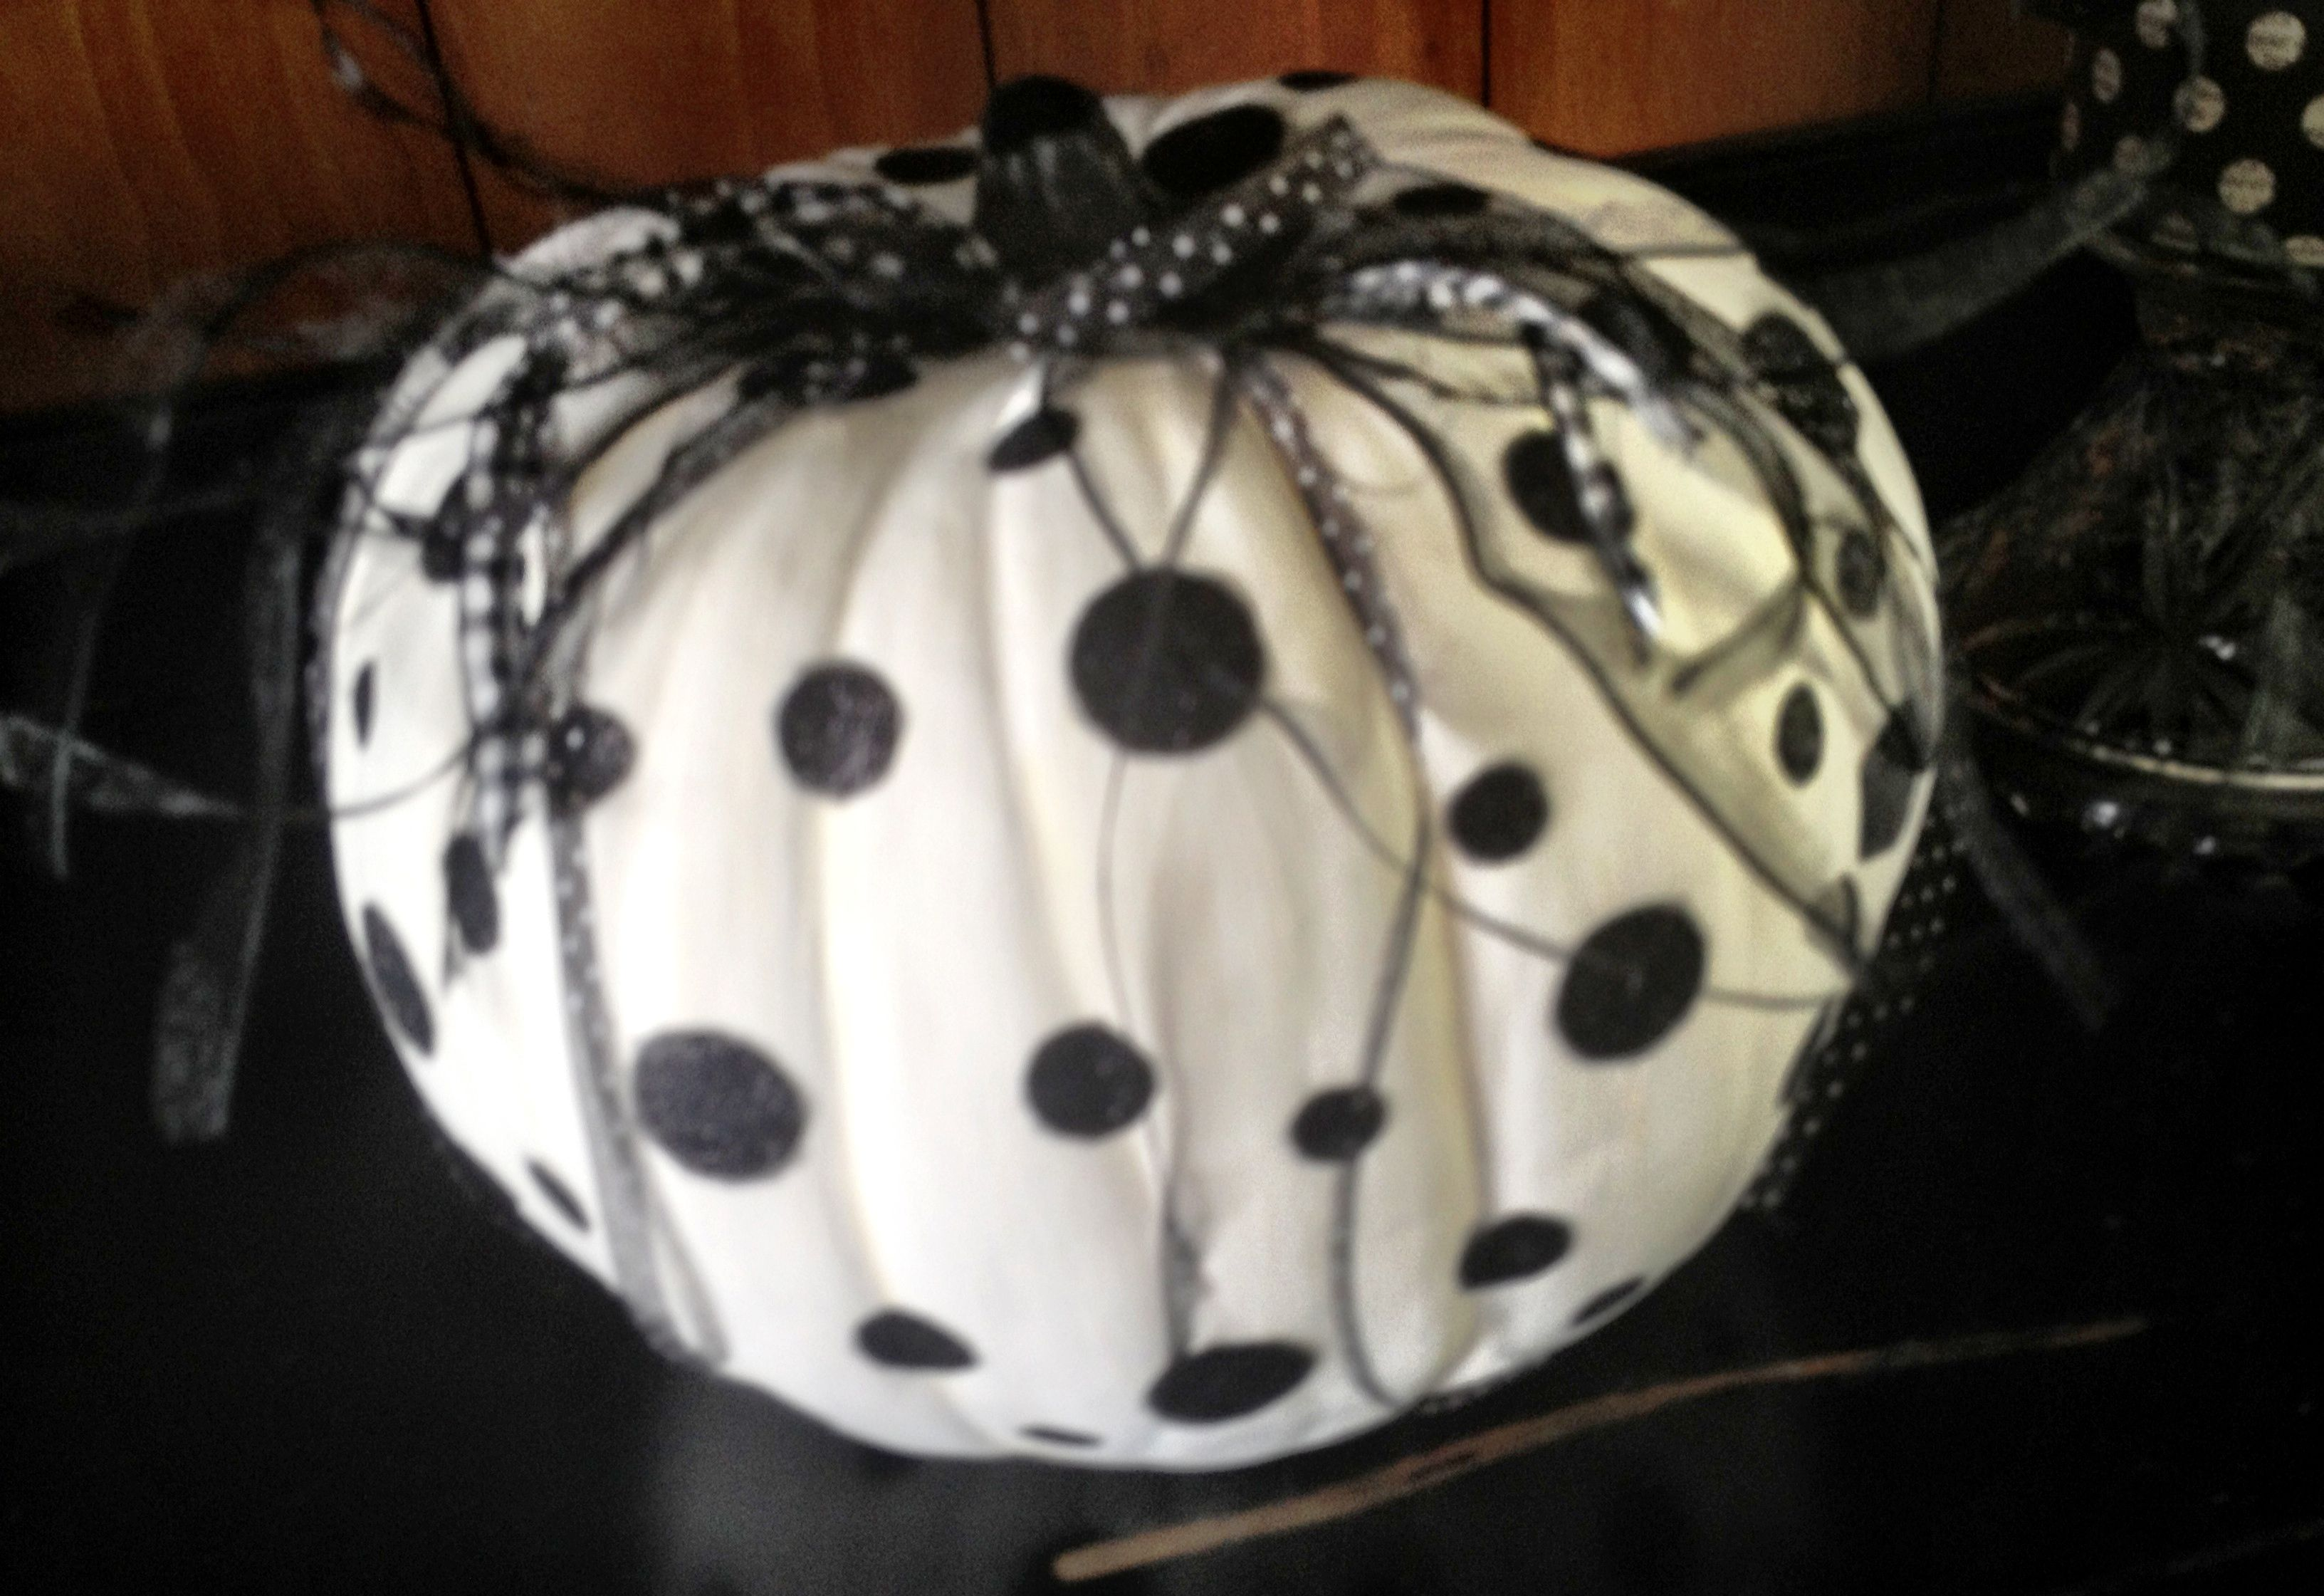 Painted Craft Pumpkin White Em Black And Cut Out